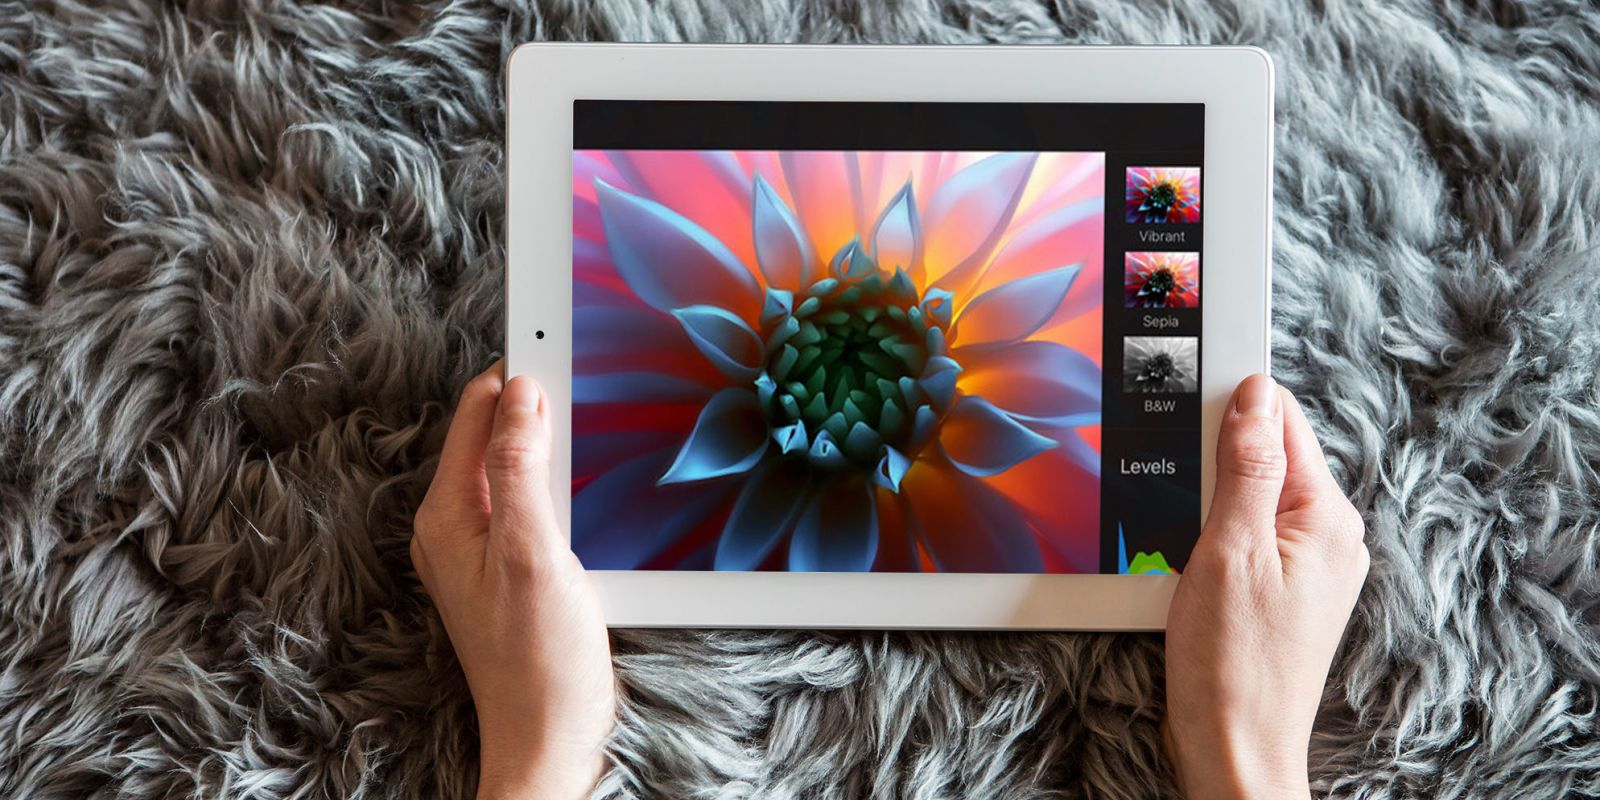 15 Apps and Games Every iPad Owner Should Download